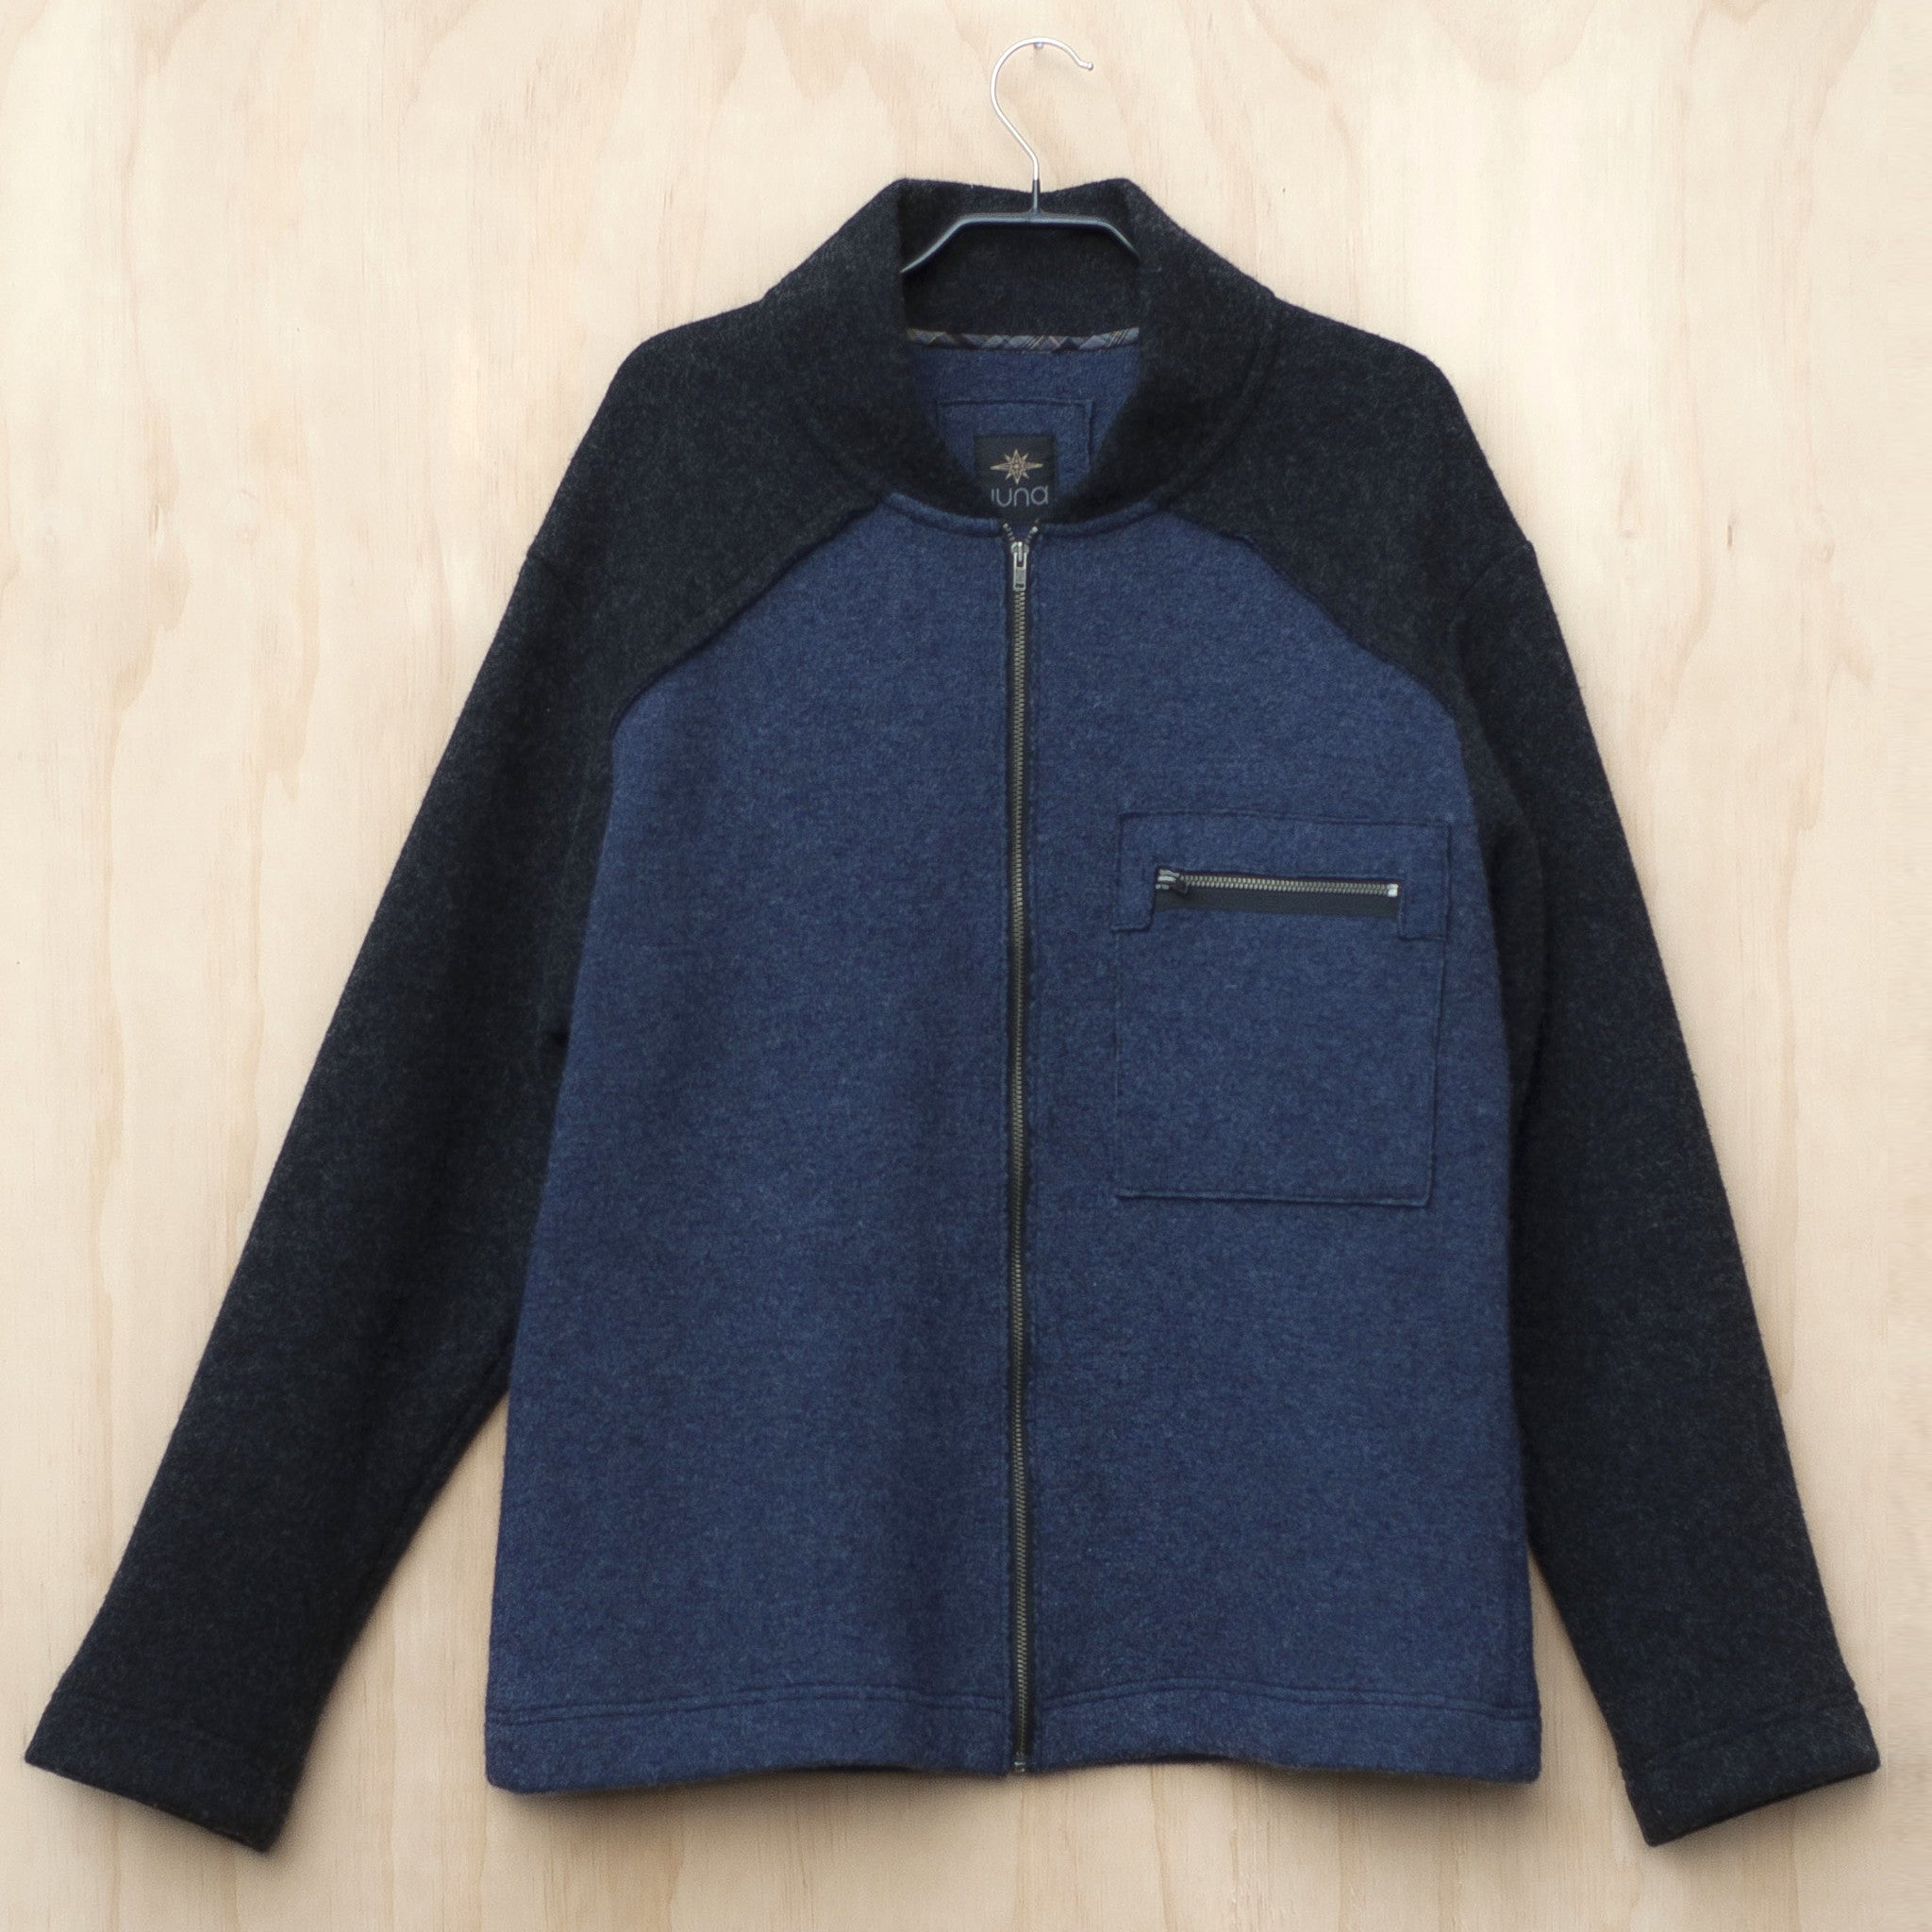 Juna Menswear Hakanoa Jacket - Blue